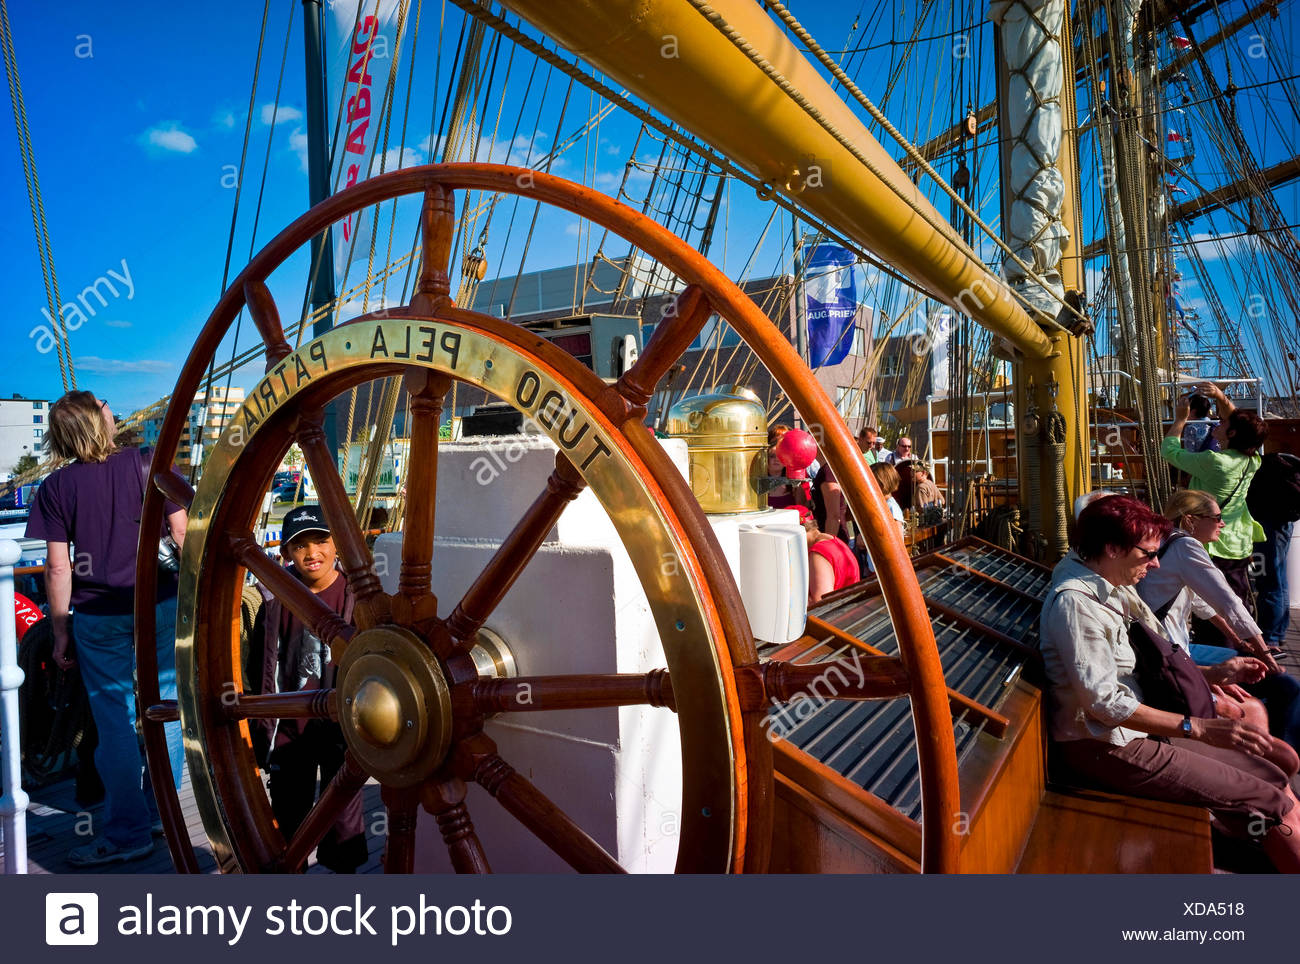 wheel of a training ship 'Cisne Branco' with tourists on board - Stock Image